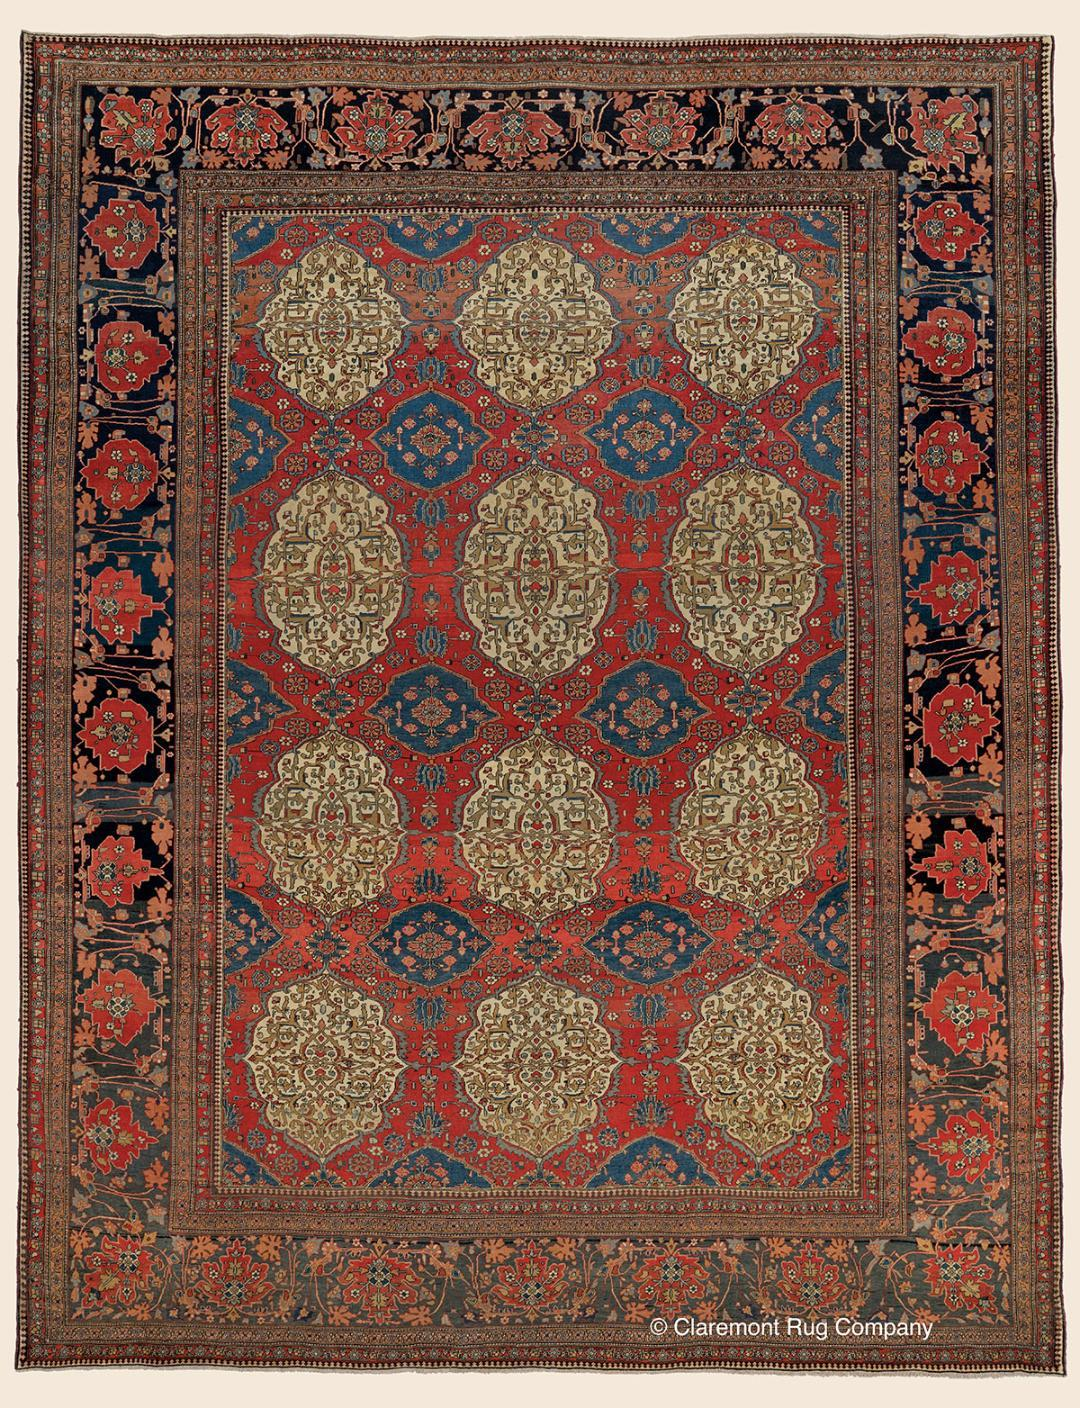 Claremont Rug Company Reports